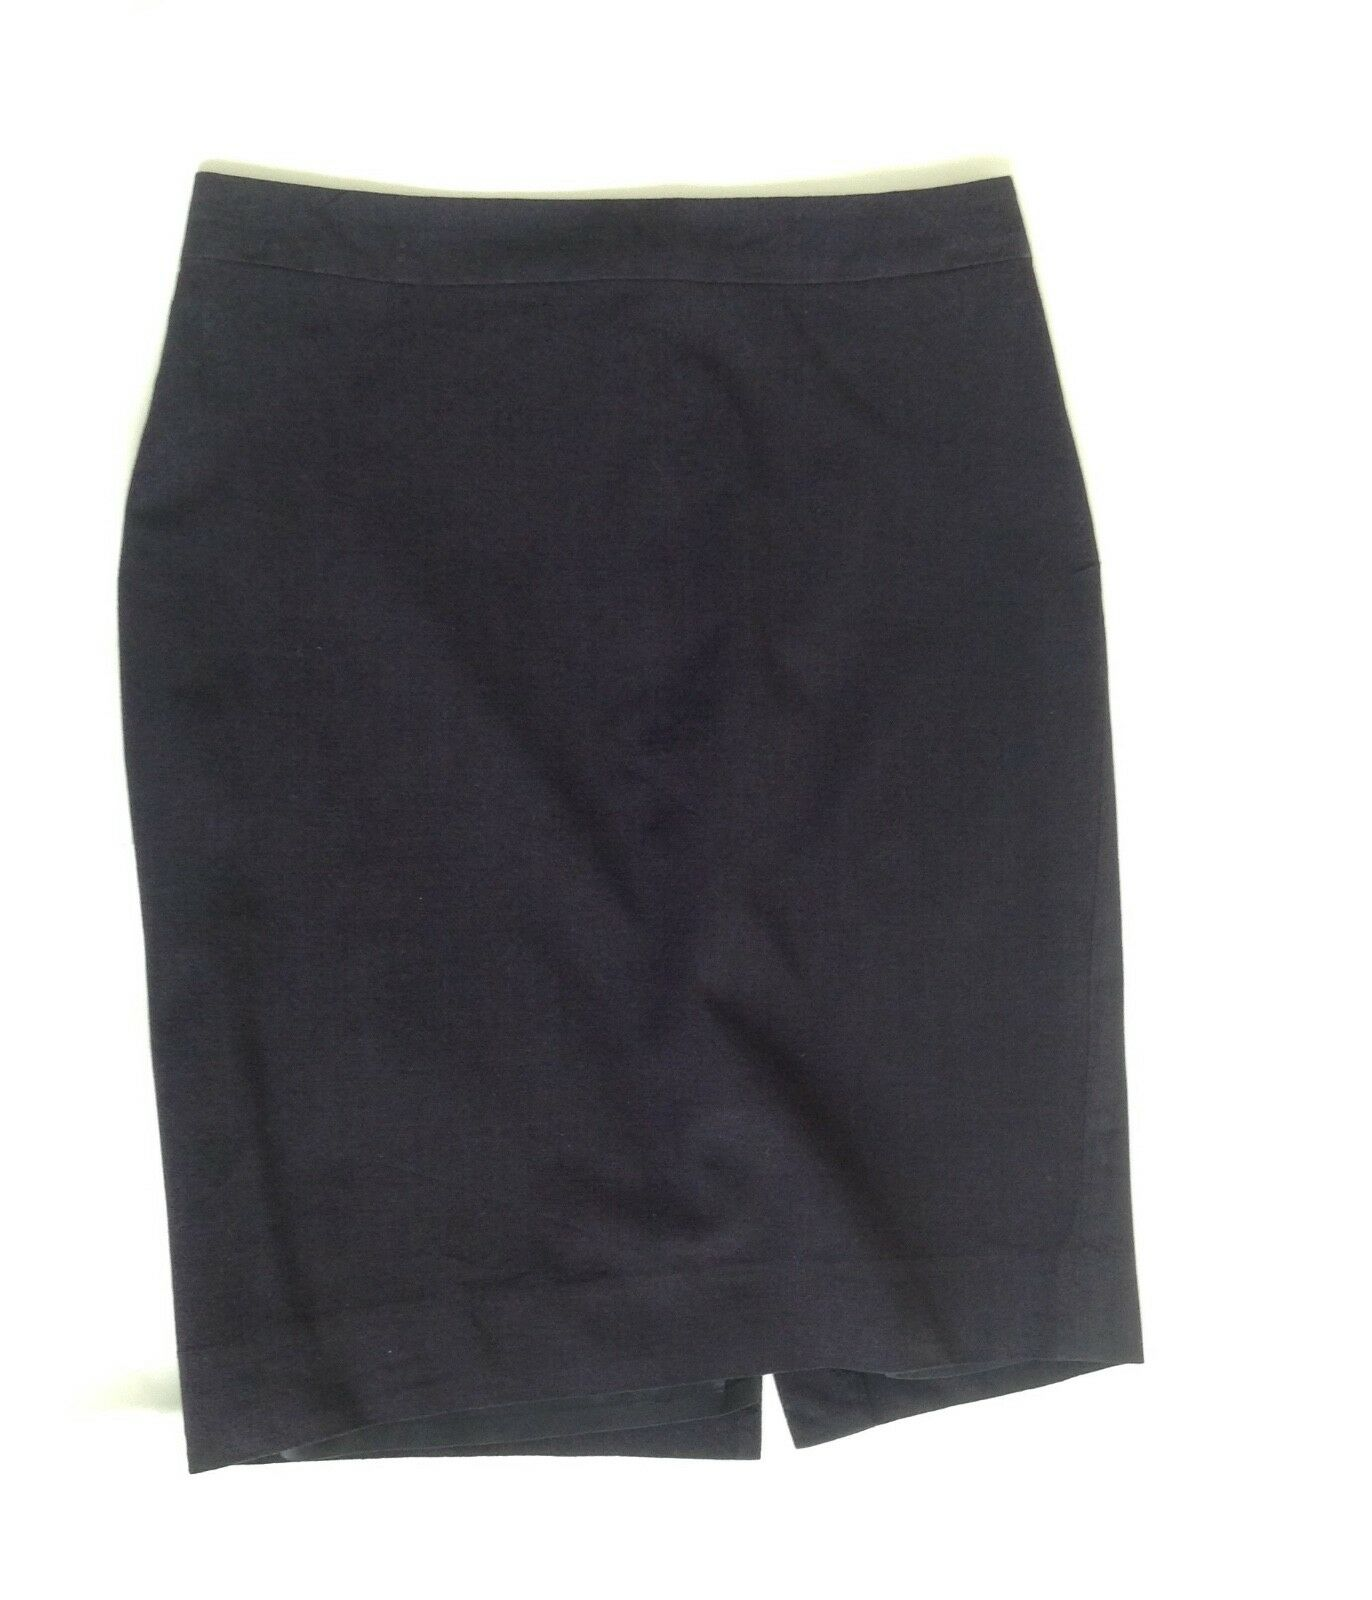 Banana Republic Navy bluee Wool Office Skirt - Size 4  29inch Waist, Above Knee